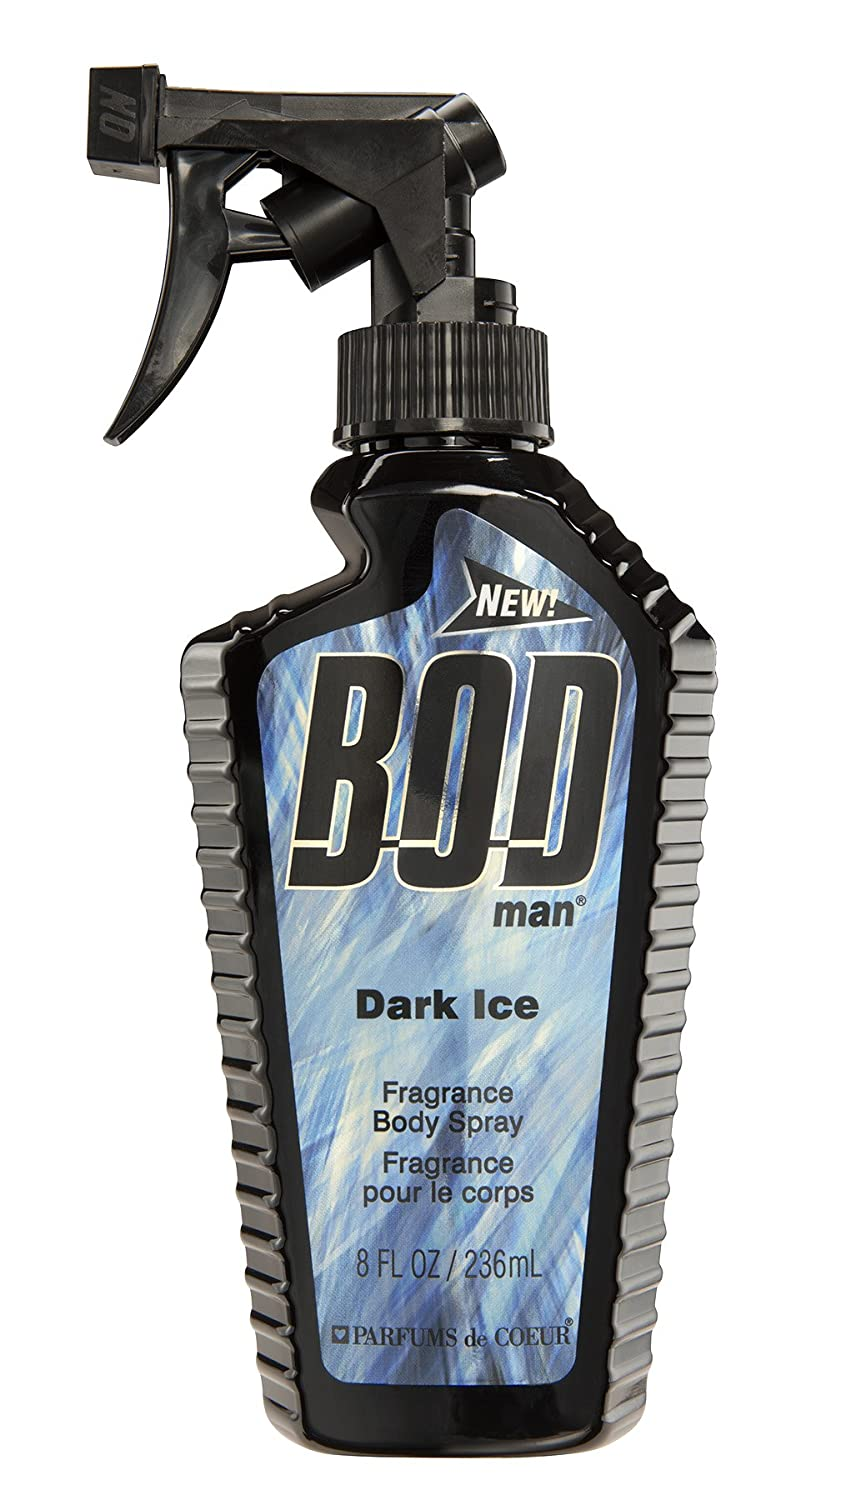 Parfums De Coeur Bod Man Dark Ice for Men Fragrance Body Spray, 8.0 Ounces BODI8M